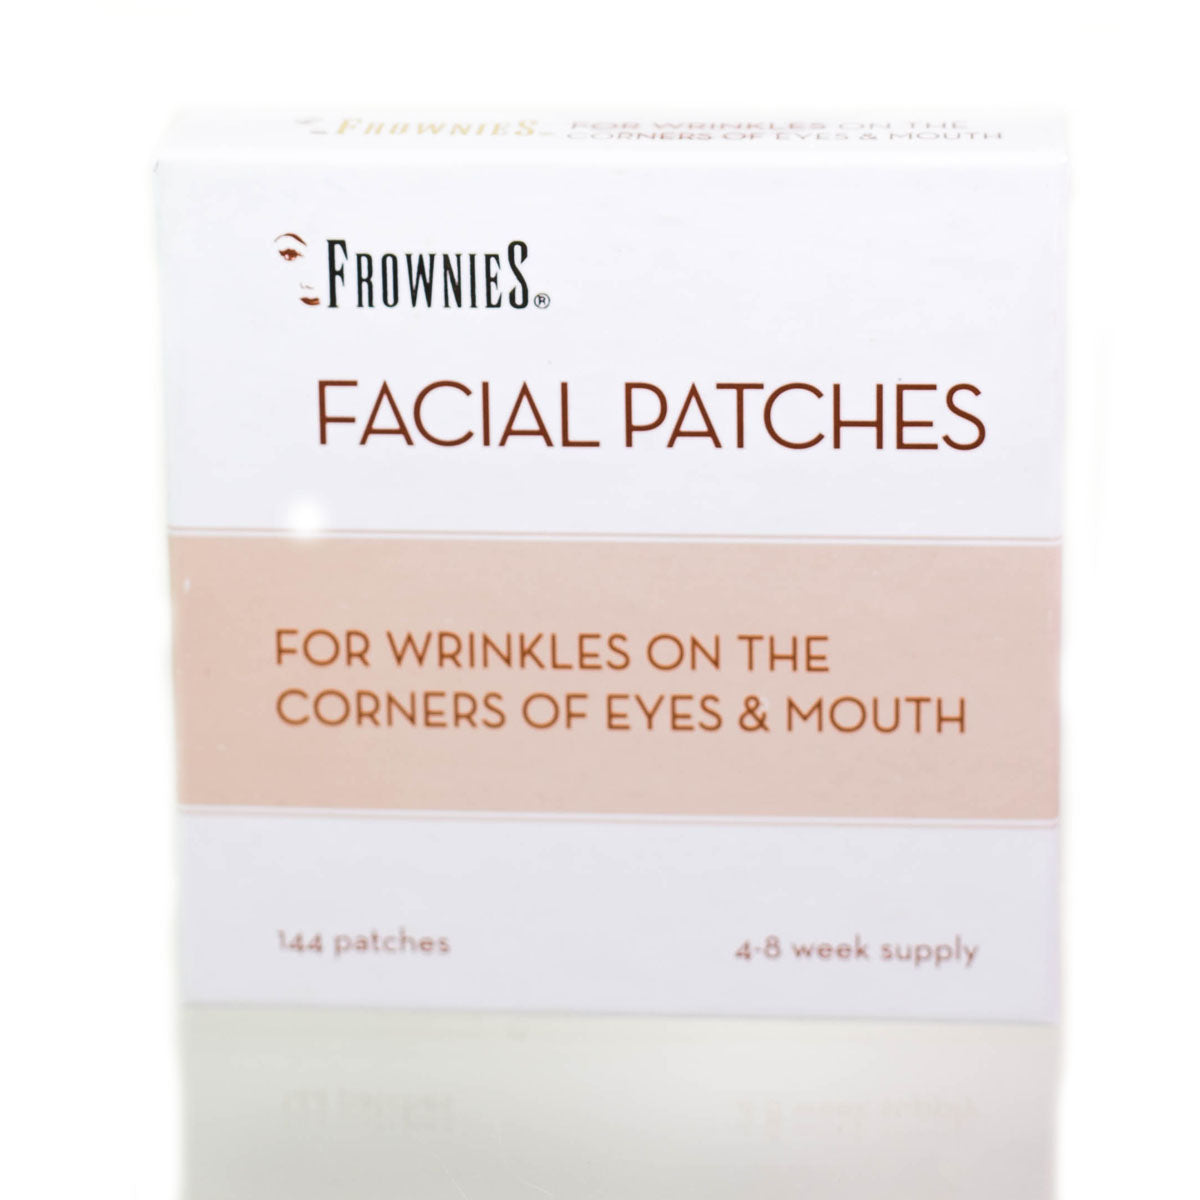 Frownies Facial Patches for Corner of Eyes & Mouth 144 Pieces per Box